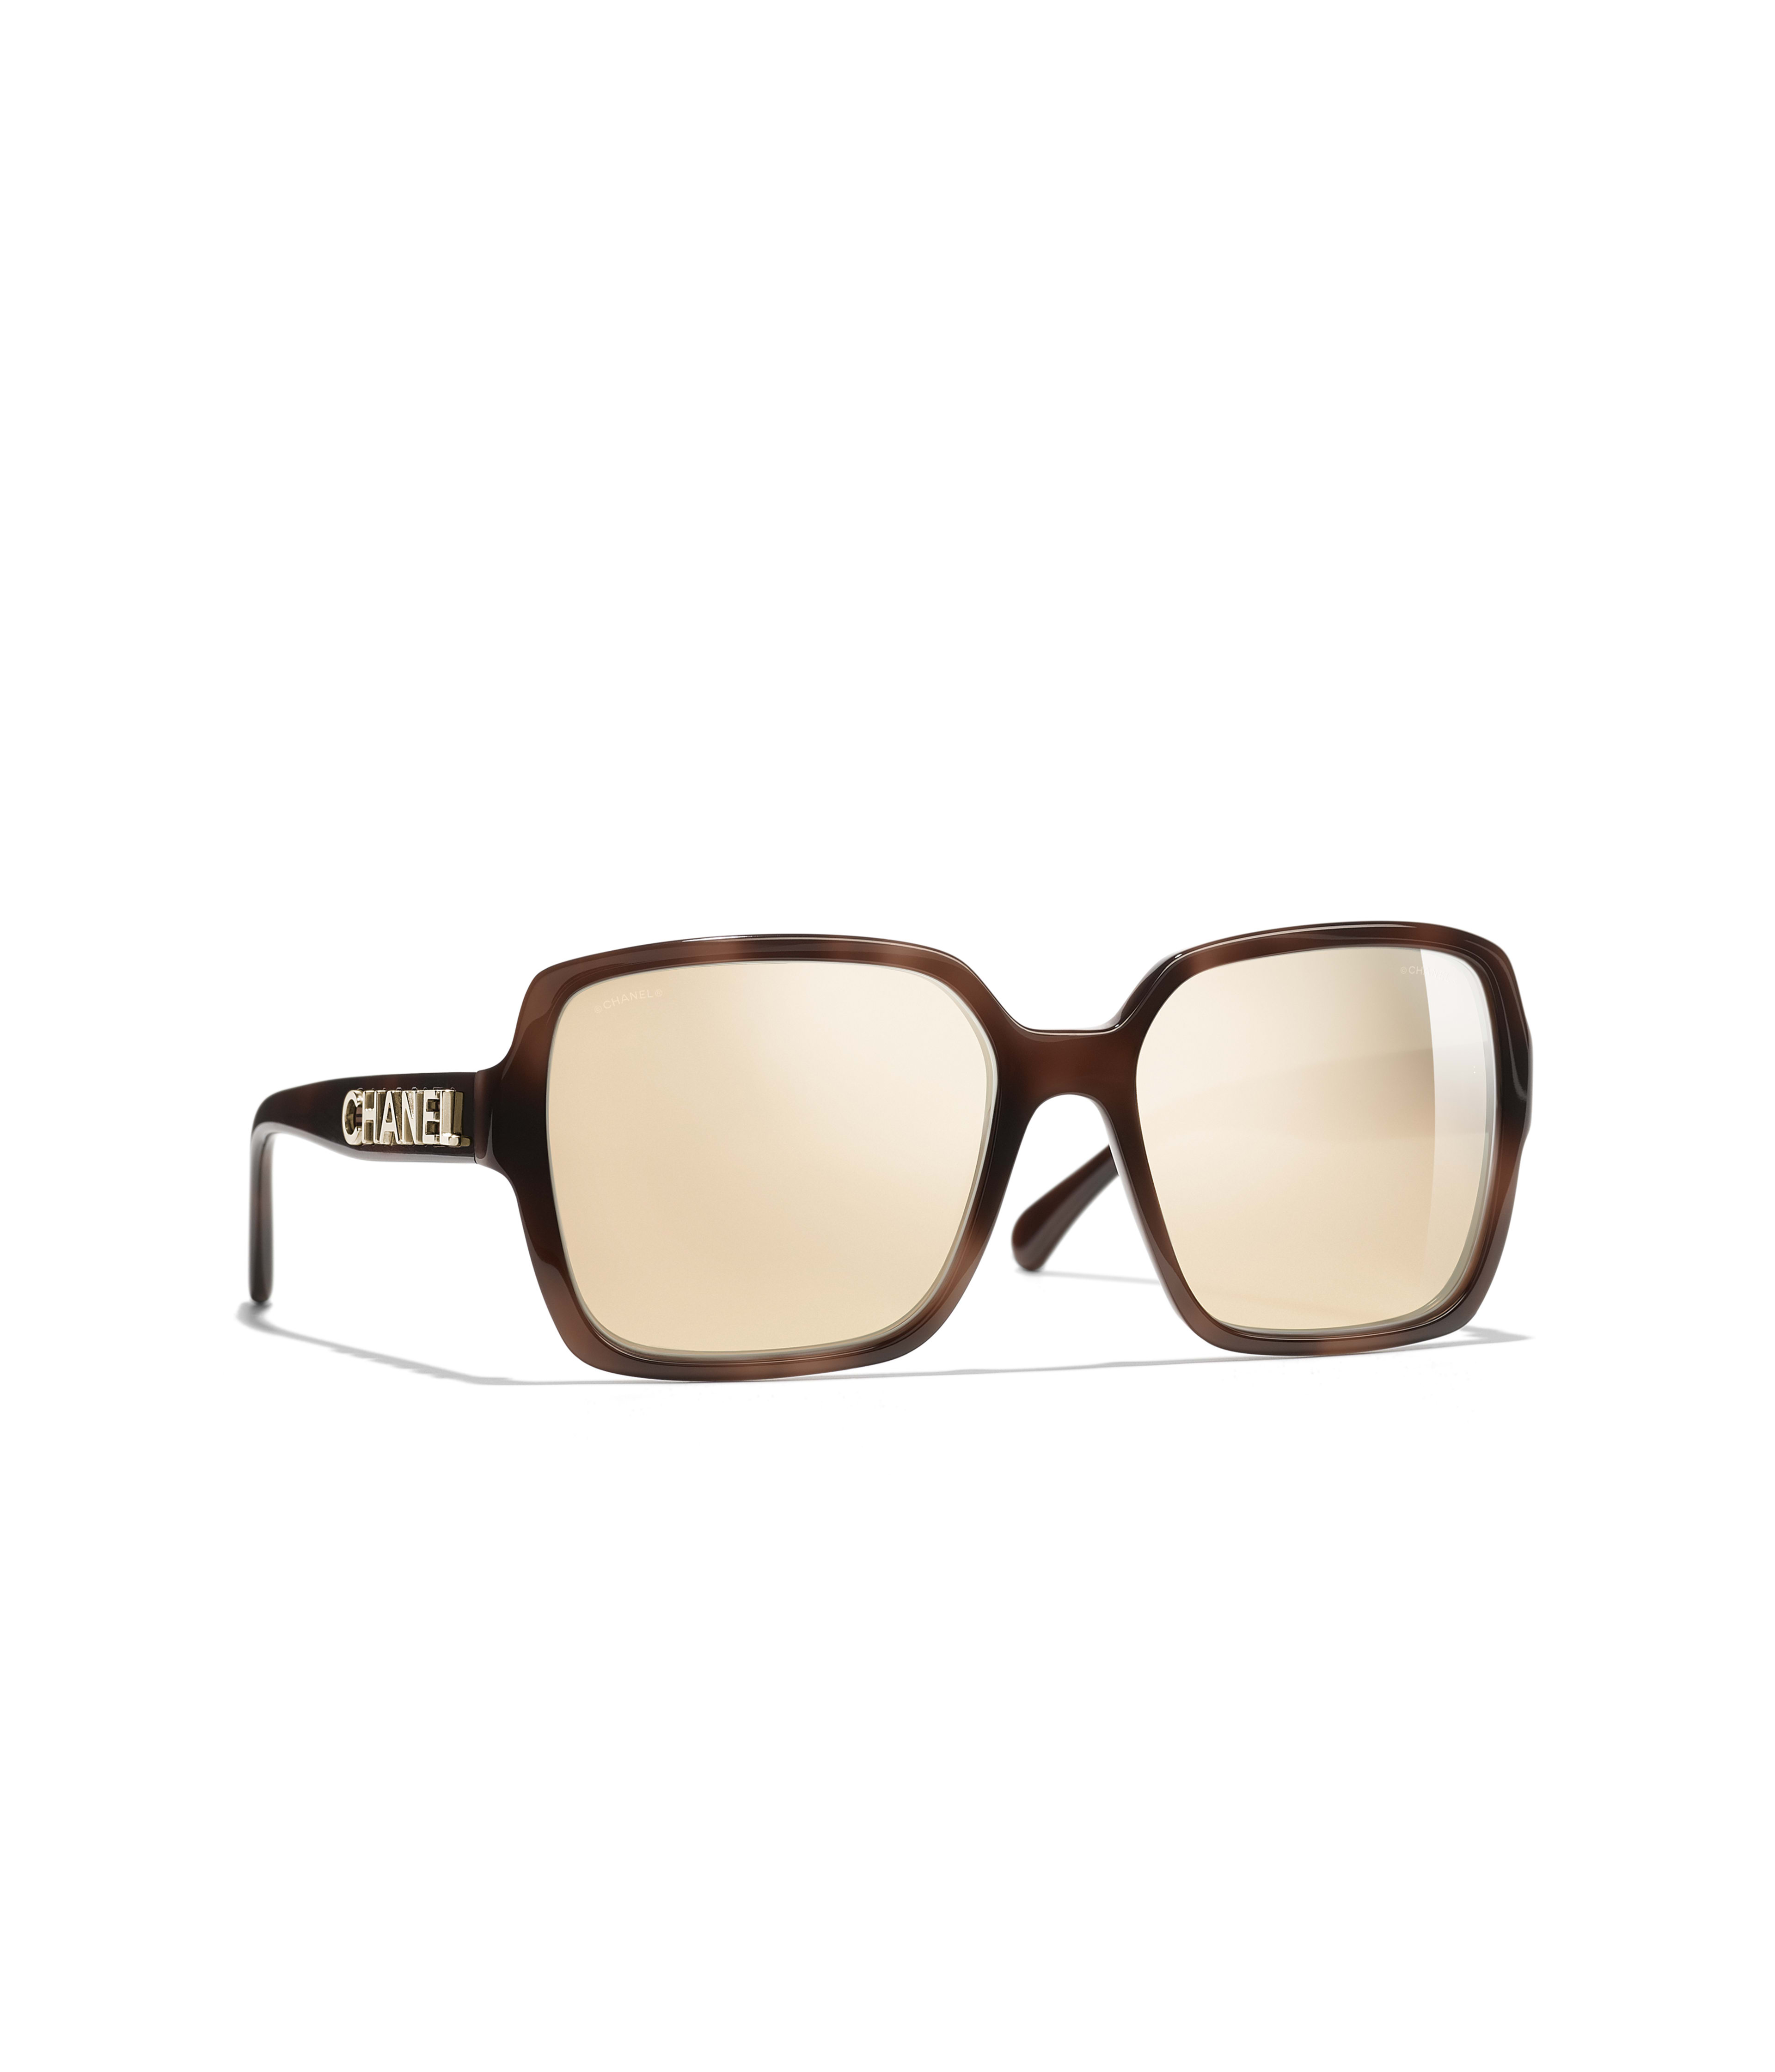 accc912264 Square Sunglasses Ref. 5408 1661 T6